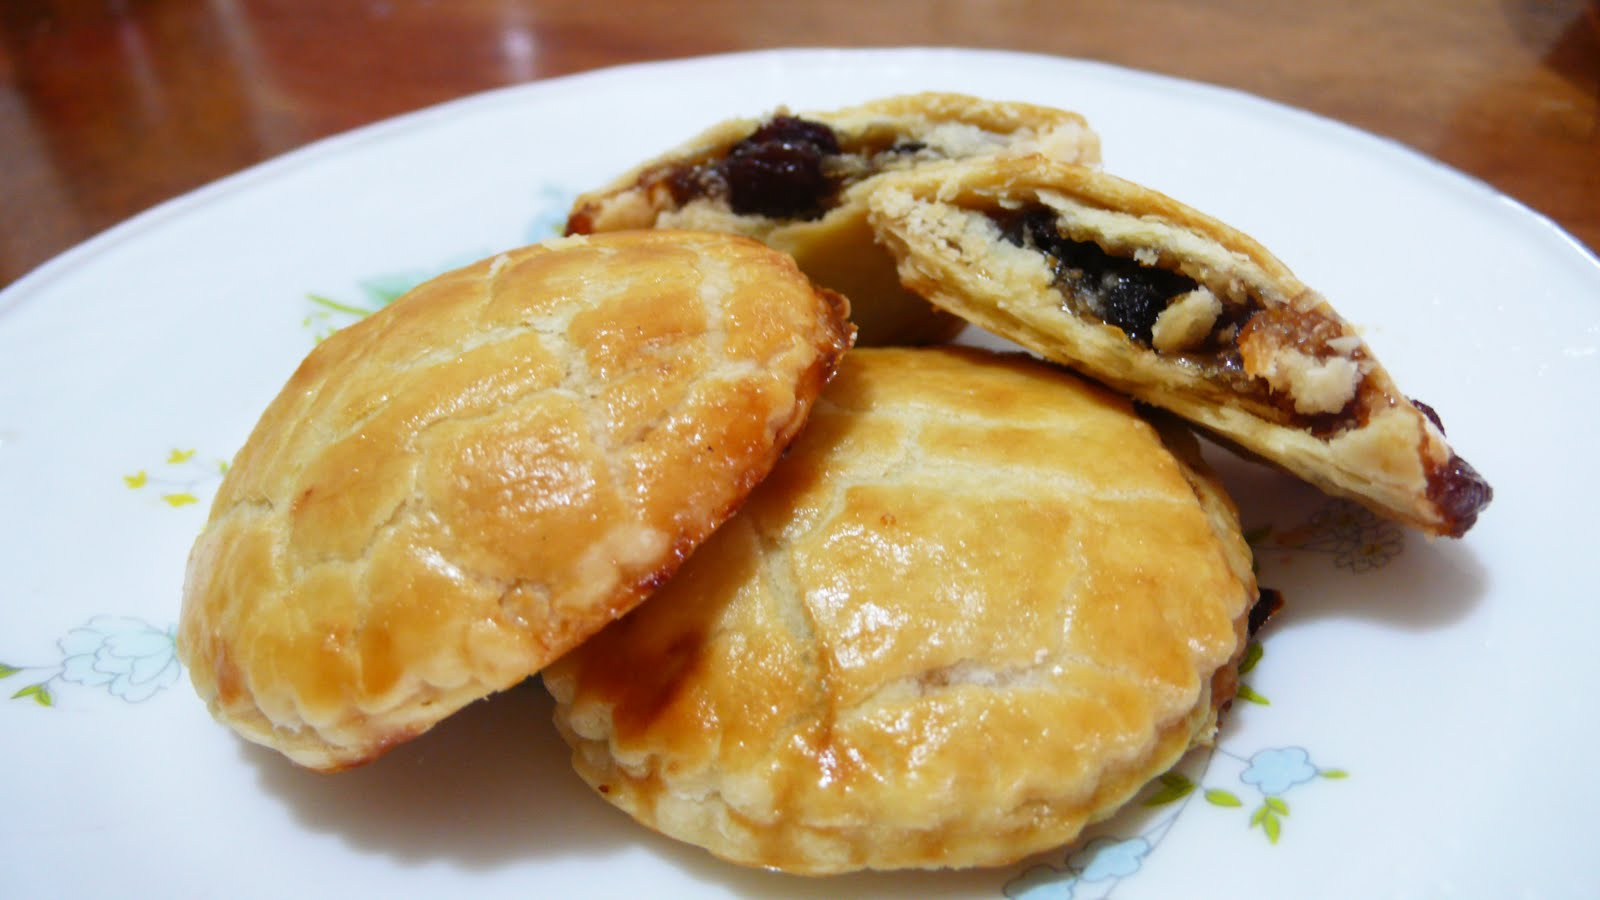 Mince Pie, also known as Minced Pie,